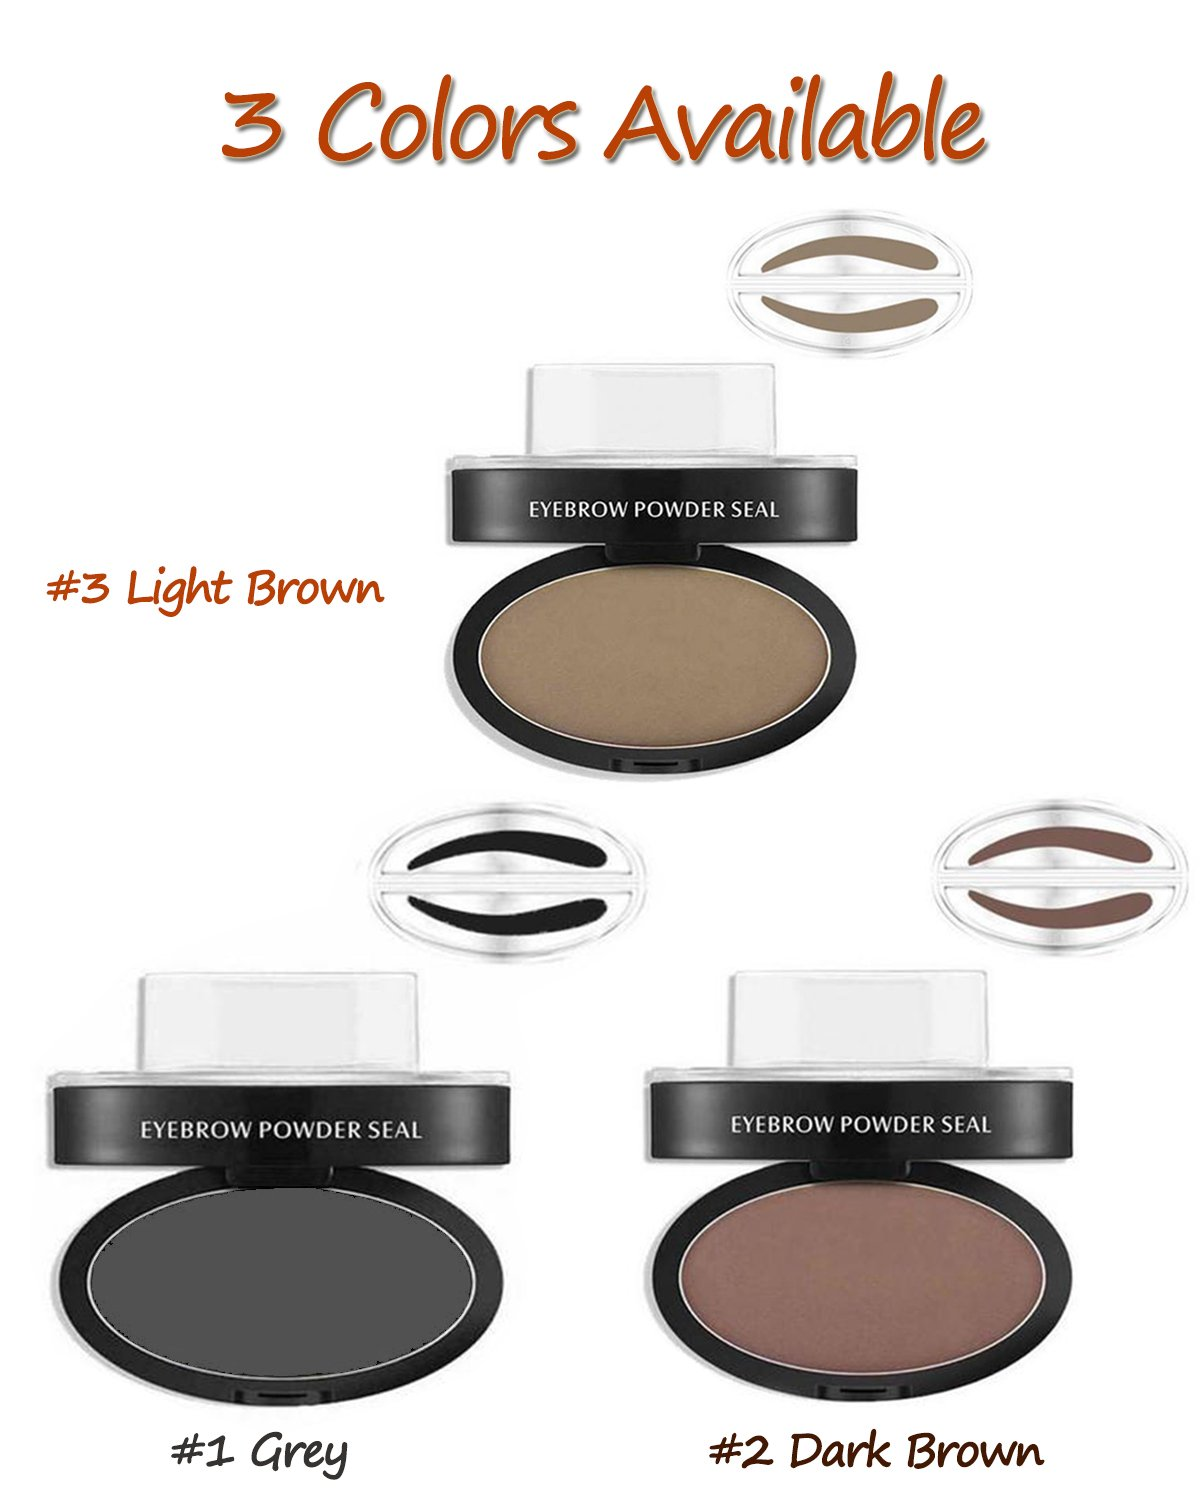 eyebrow powder. amazon.com : ladygo 3 stencils eyebrow stamp waterproof powder brush eye brow perfect seal natural-looking eyebrows delicate shape in seconds makeup tool